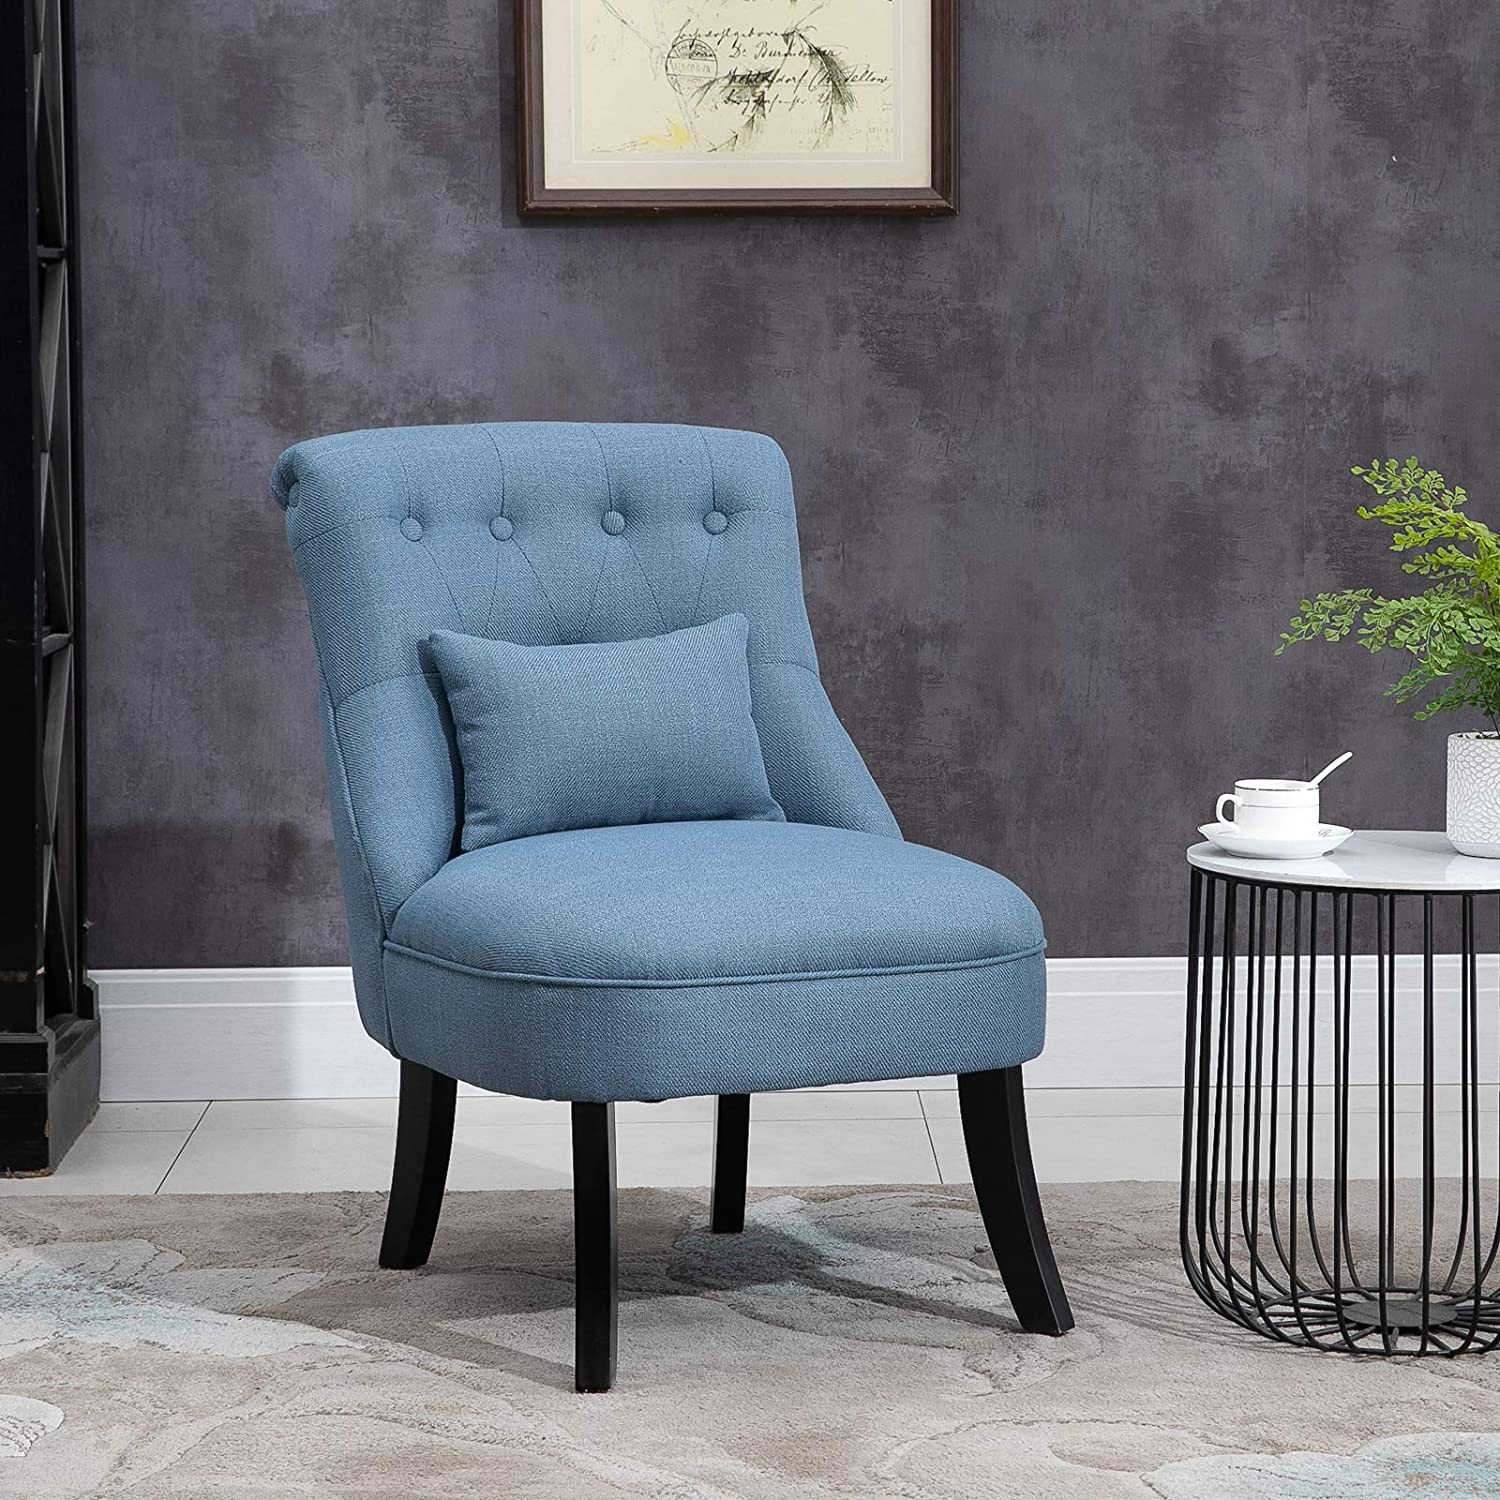 HOMCOM Fabric Single Sofa Dining Chair Tub Chair Upholstered W//Pillow Solid Wood Leg Home Living Room Furniture Blue